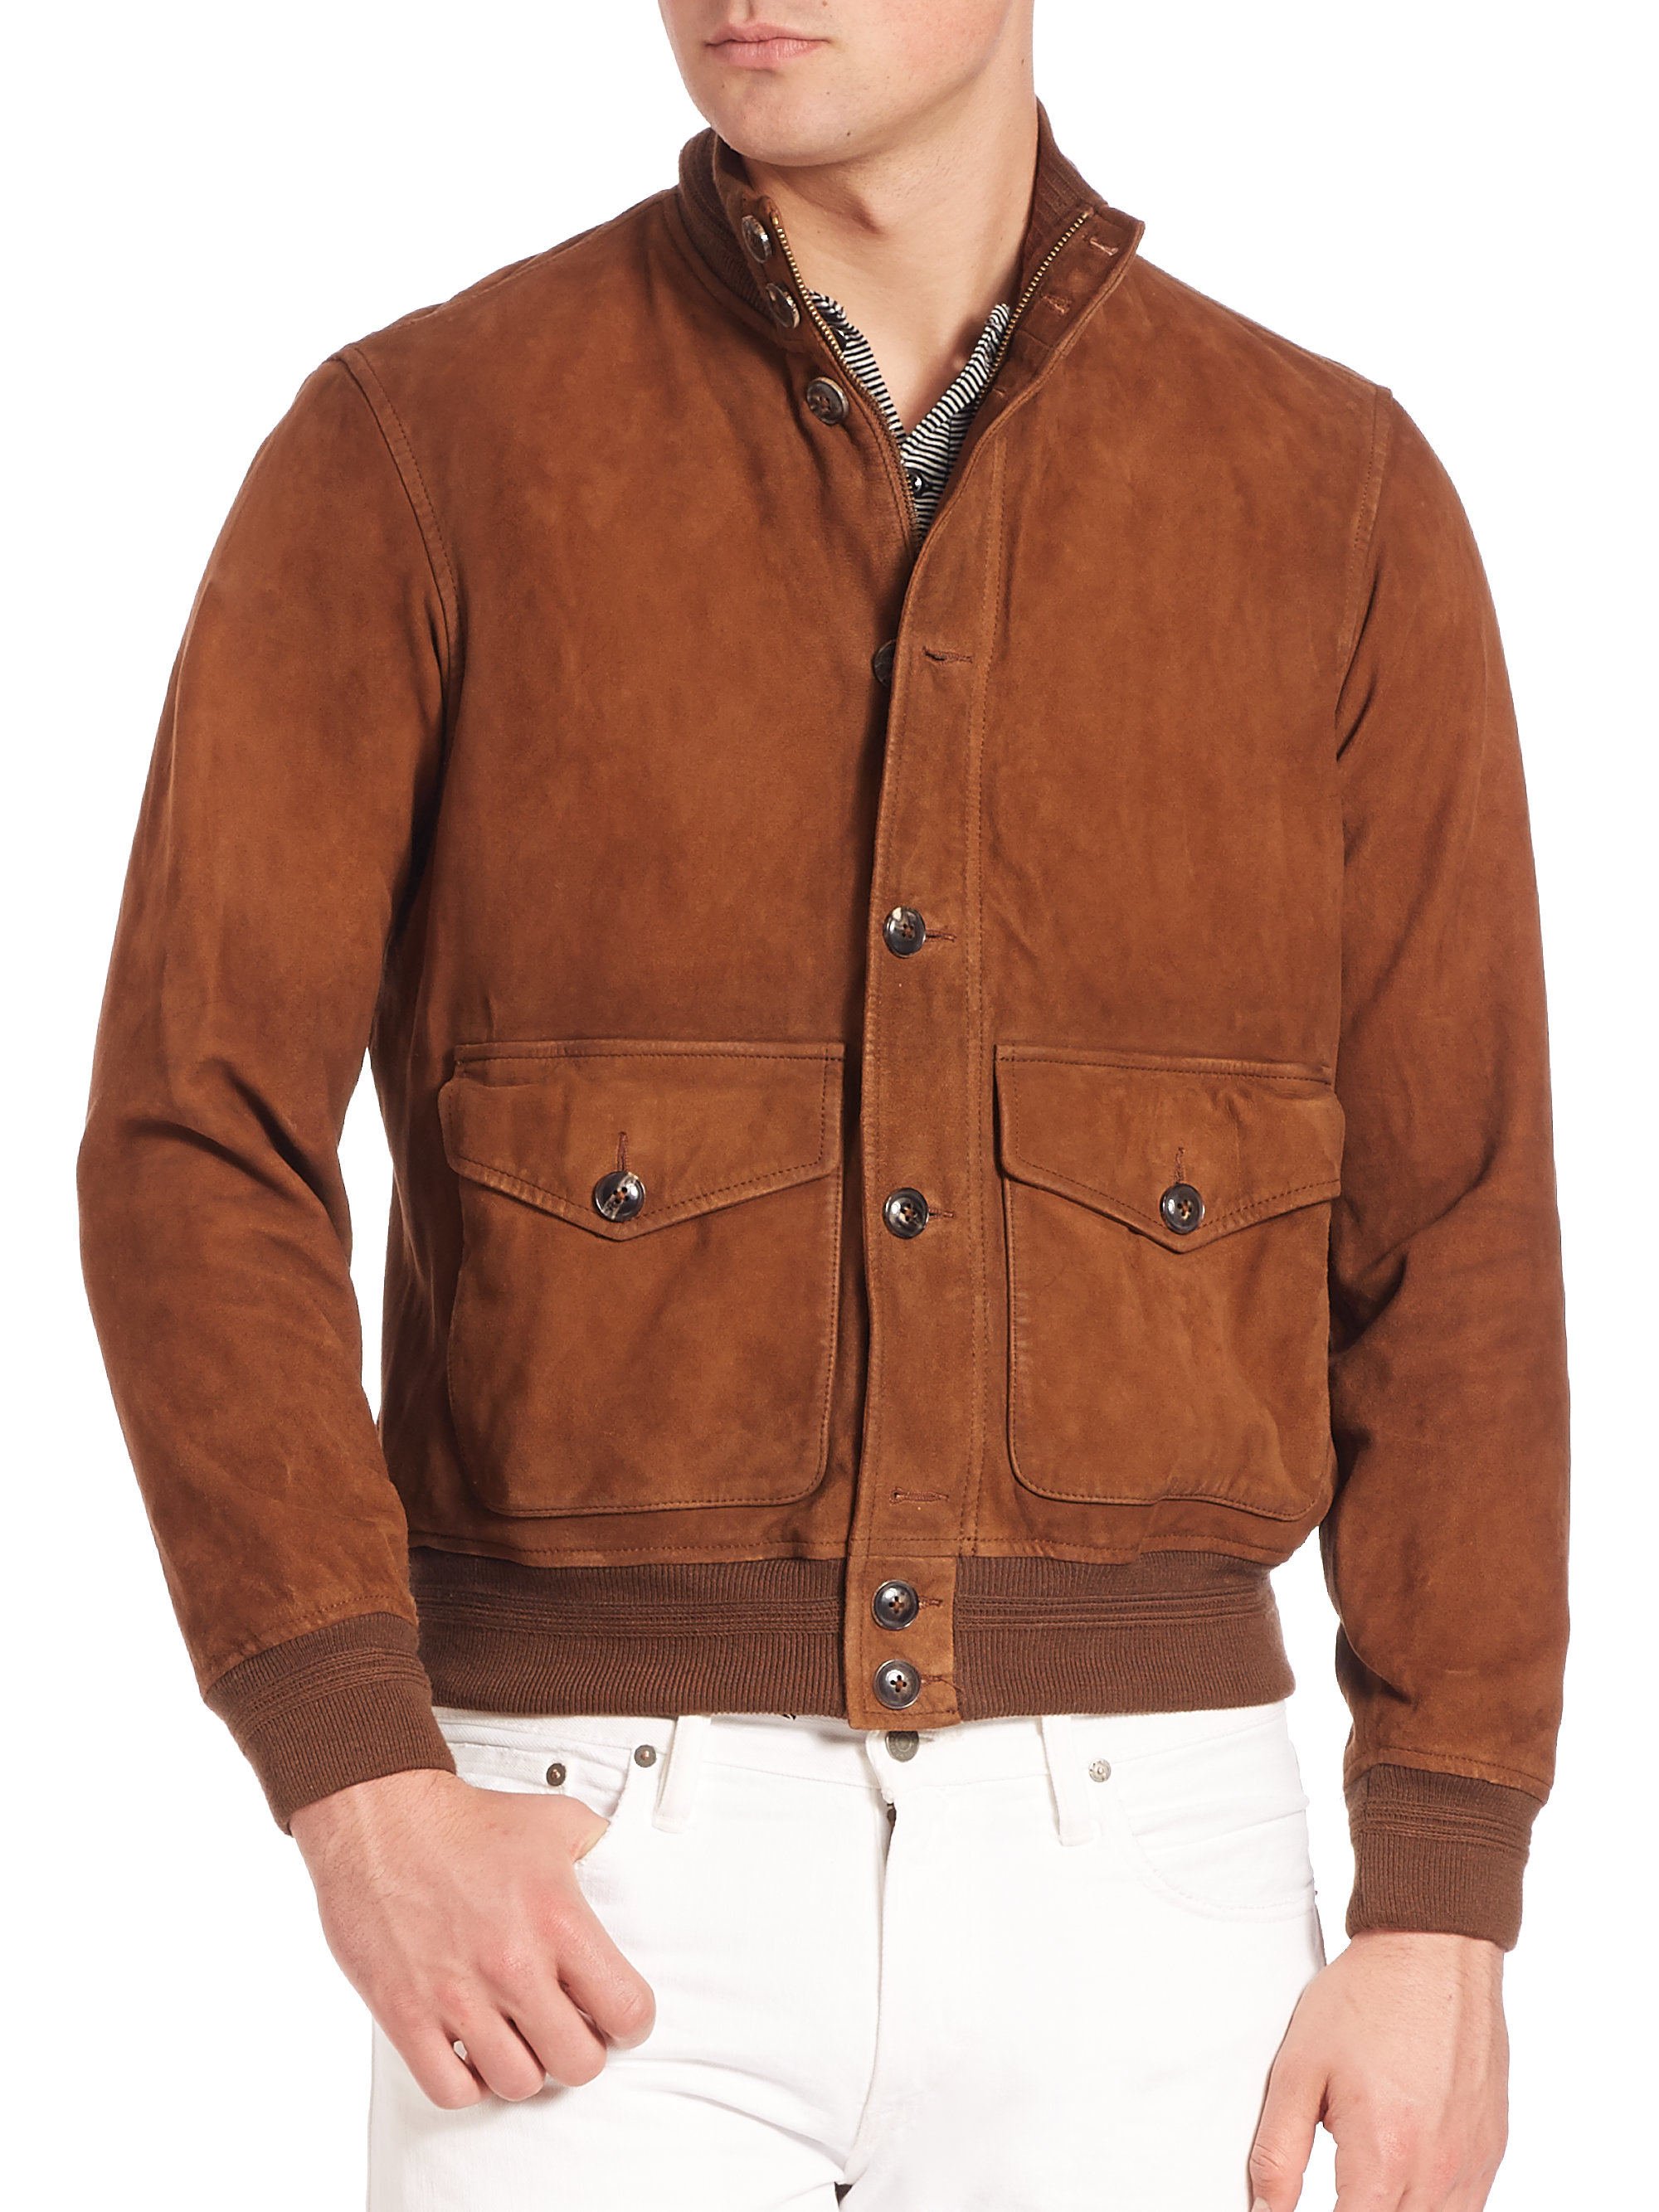 Suede Jacket Outfits For Men 20 Ways To Wear A Suede Jacket: Polo Ralph Lauren Suede Skeet Jacket In Brown For Men